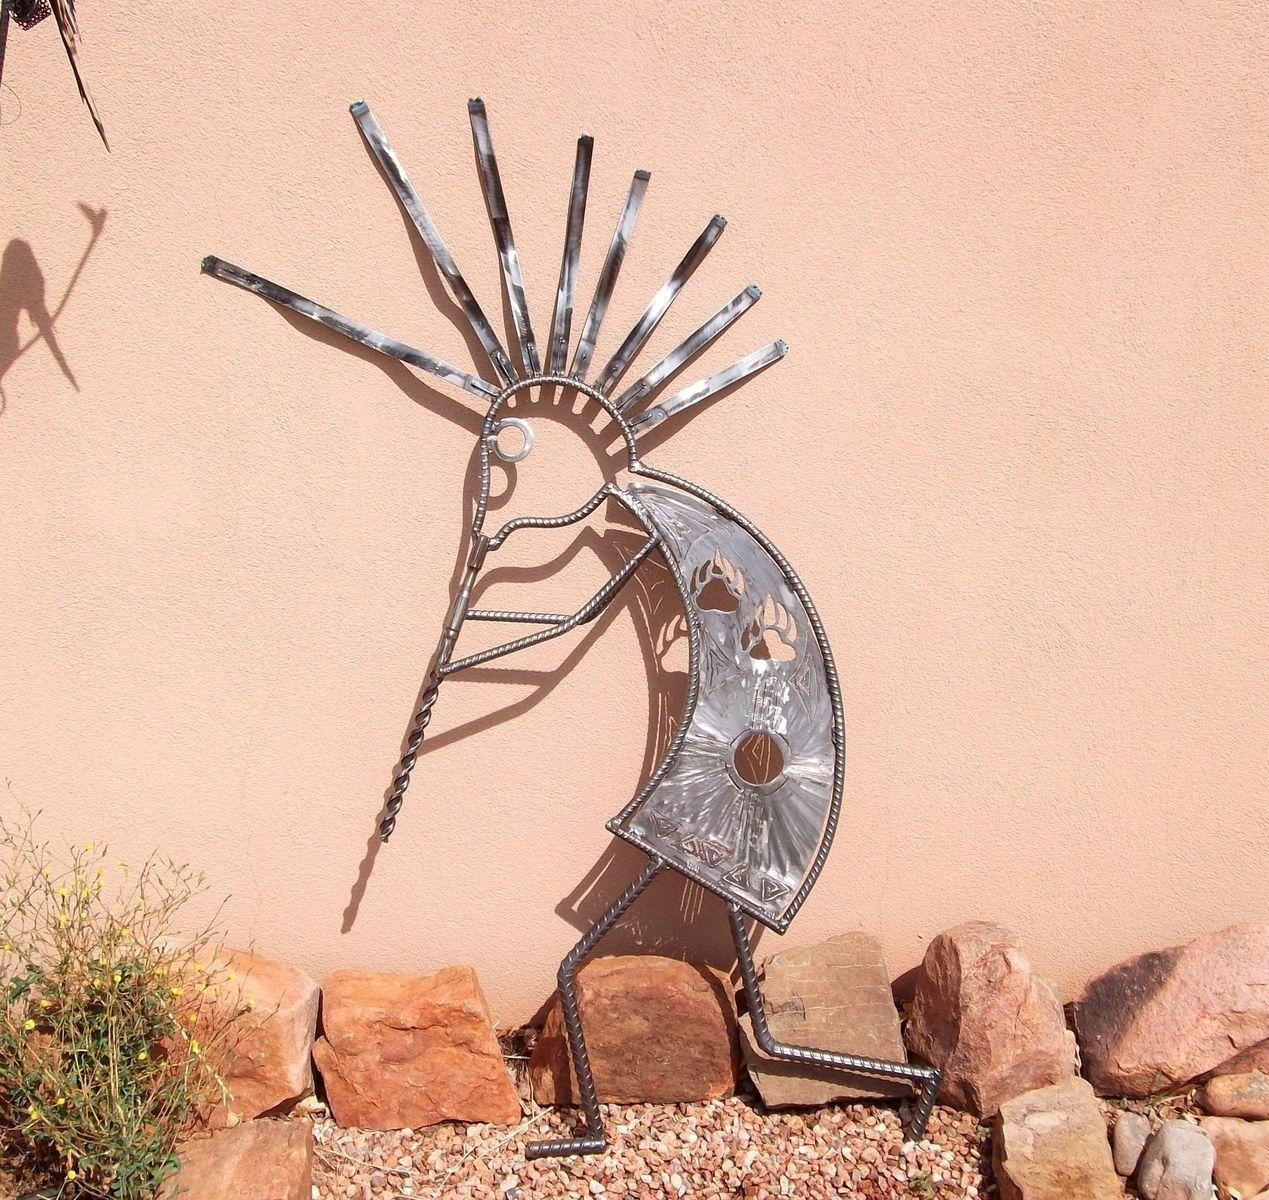 Handmade Garden Art, Home Decor,outdoor Sculpture Kokopelli Regarding Kokopelli Metal Wall Art (Image 11 of 20)